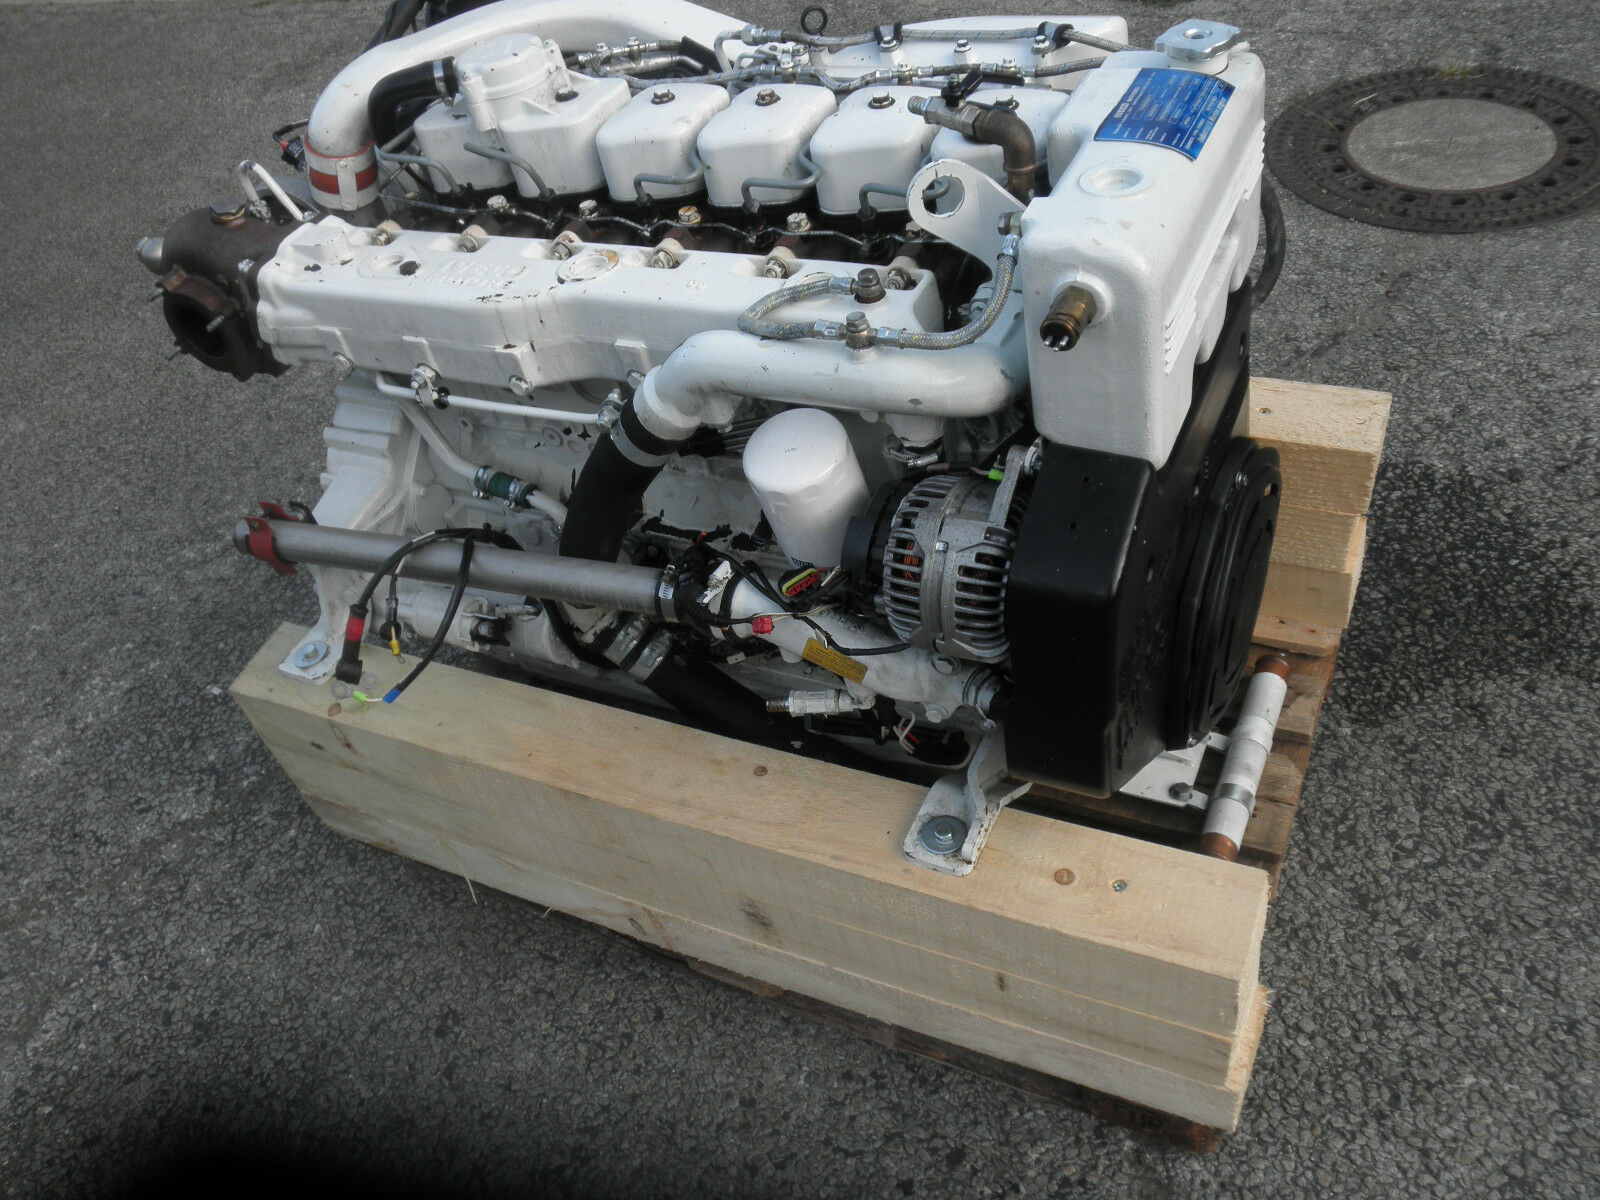 Industrieal &  Marine Engine Iveco Schiffsdieselmotor N60 Schiffsdieselmotor Iveco PFT 665db9